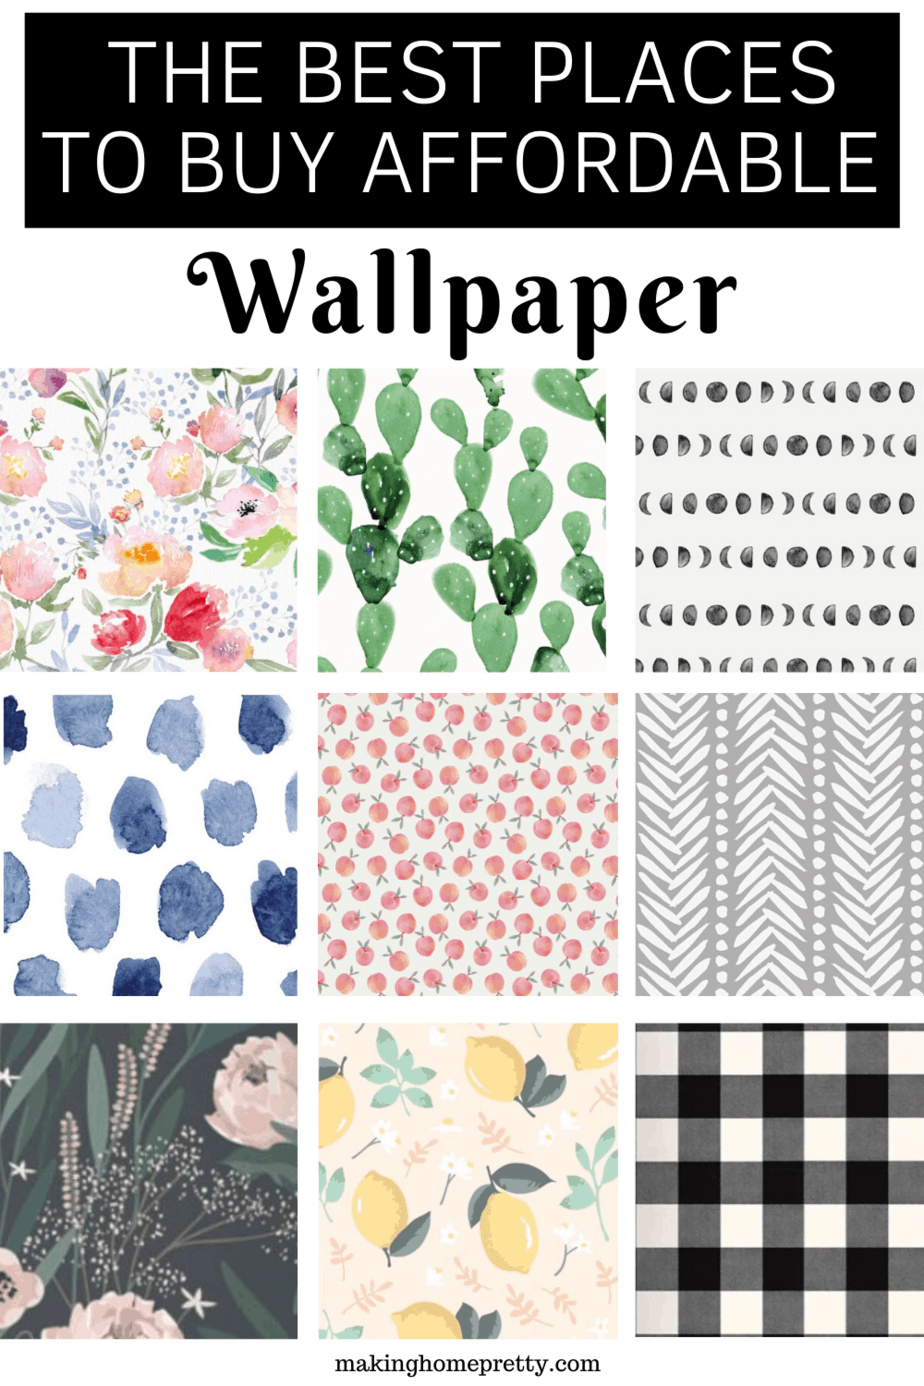 Best Places To Buy Cute And Affordable Wallpaper Making Home Pretty